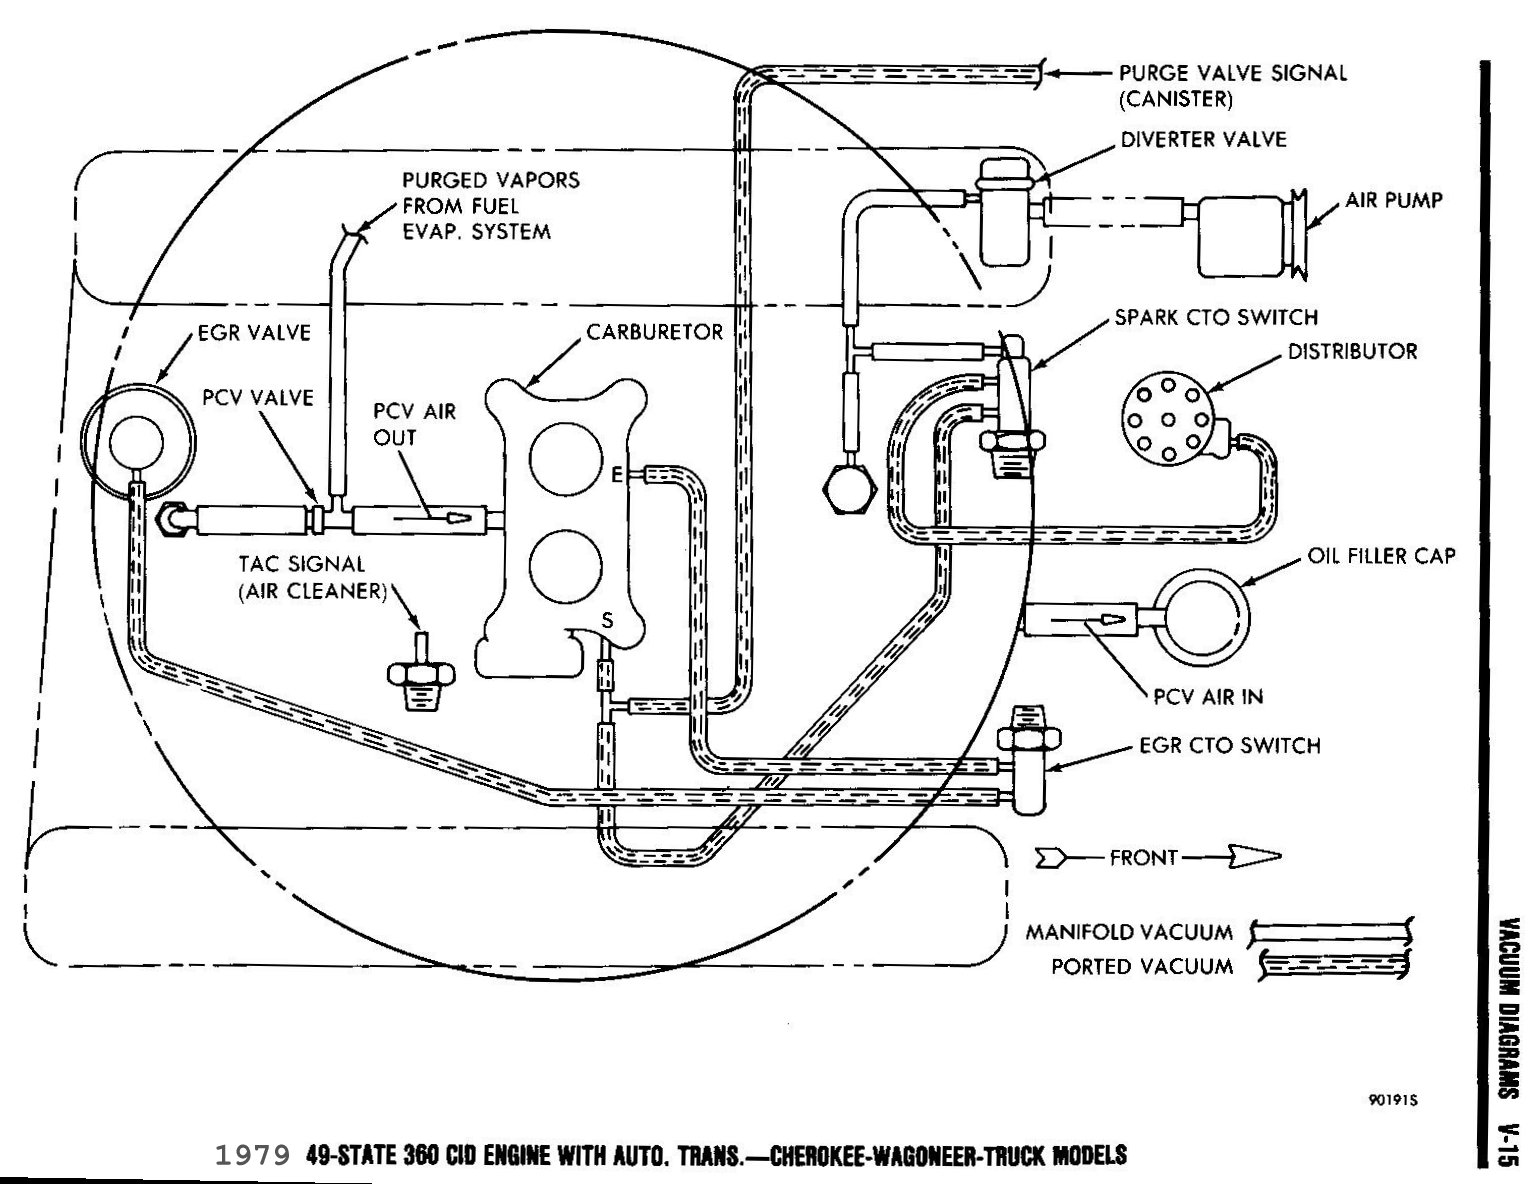 79 vacuum diagram and EGR dead spot International Full Size Jeep – Jeep Engine Vacuum Diagram